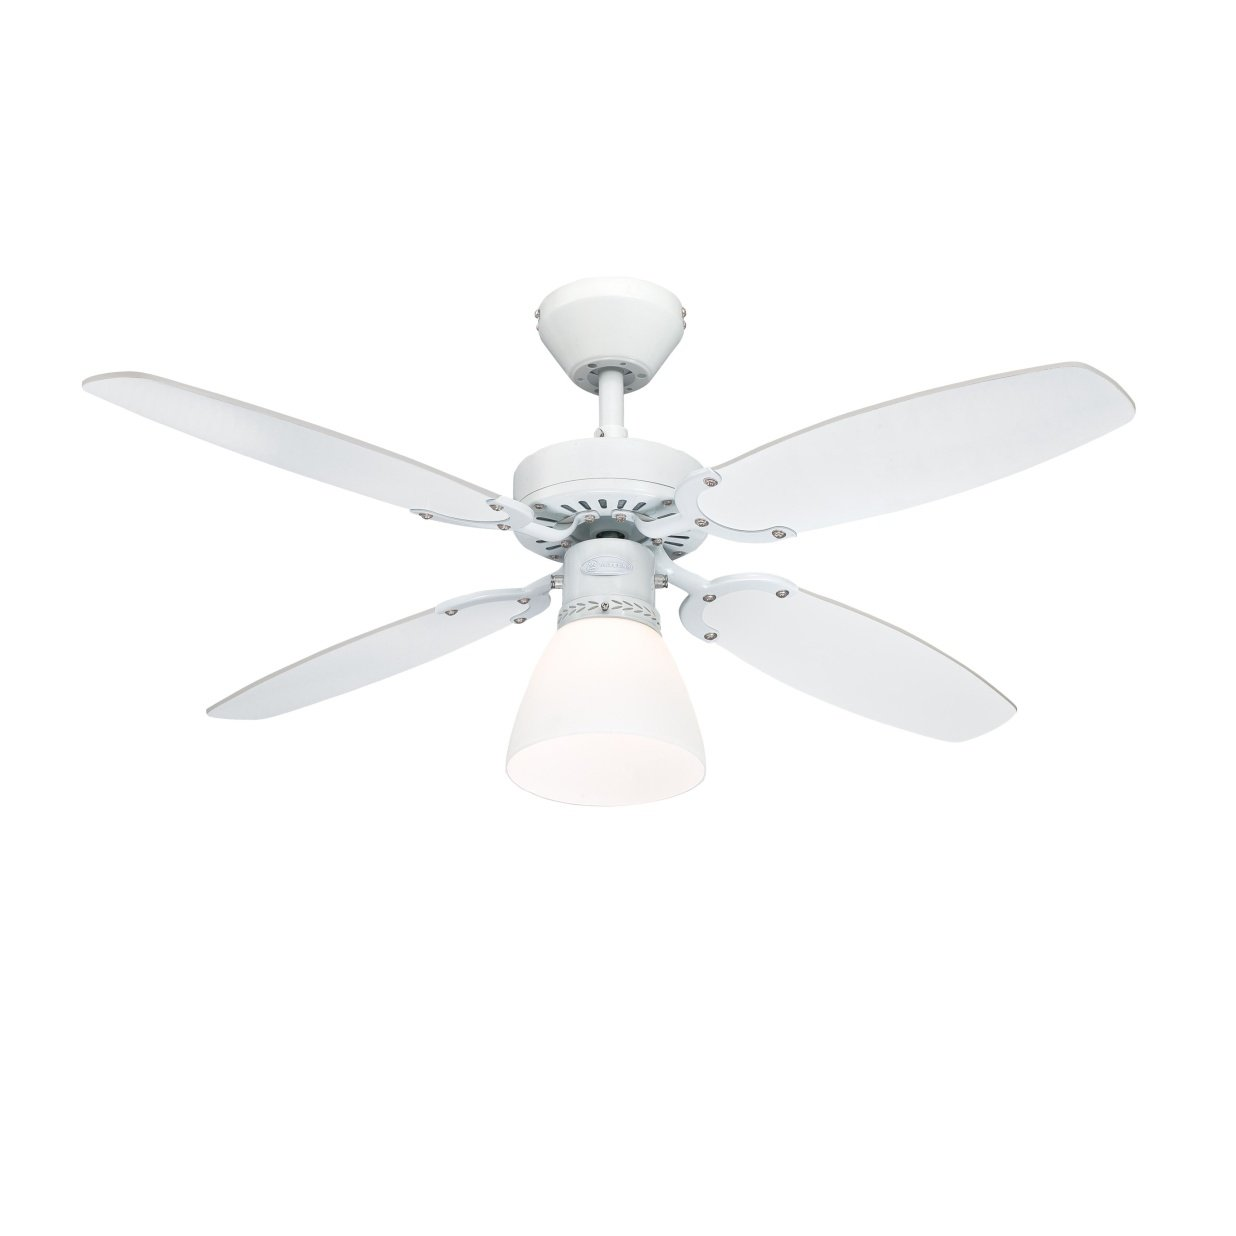 Westinghouse Capitol Indoor Ceiling Fan, Metal, White Westinghouse Lighting 7870840